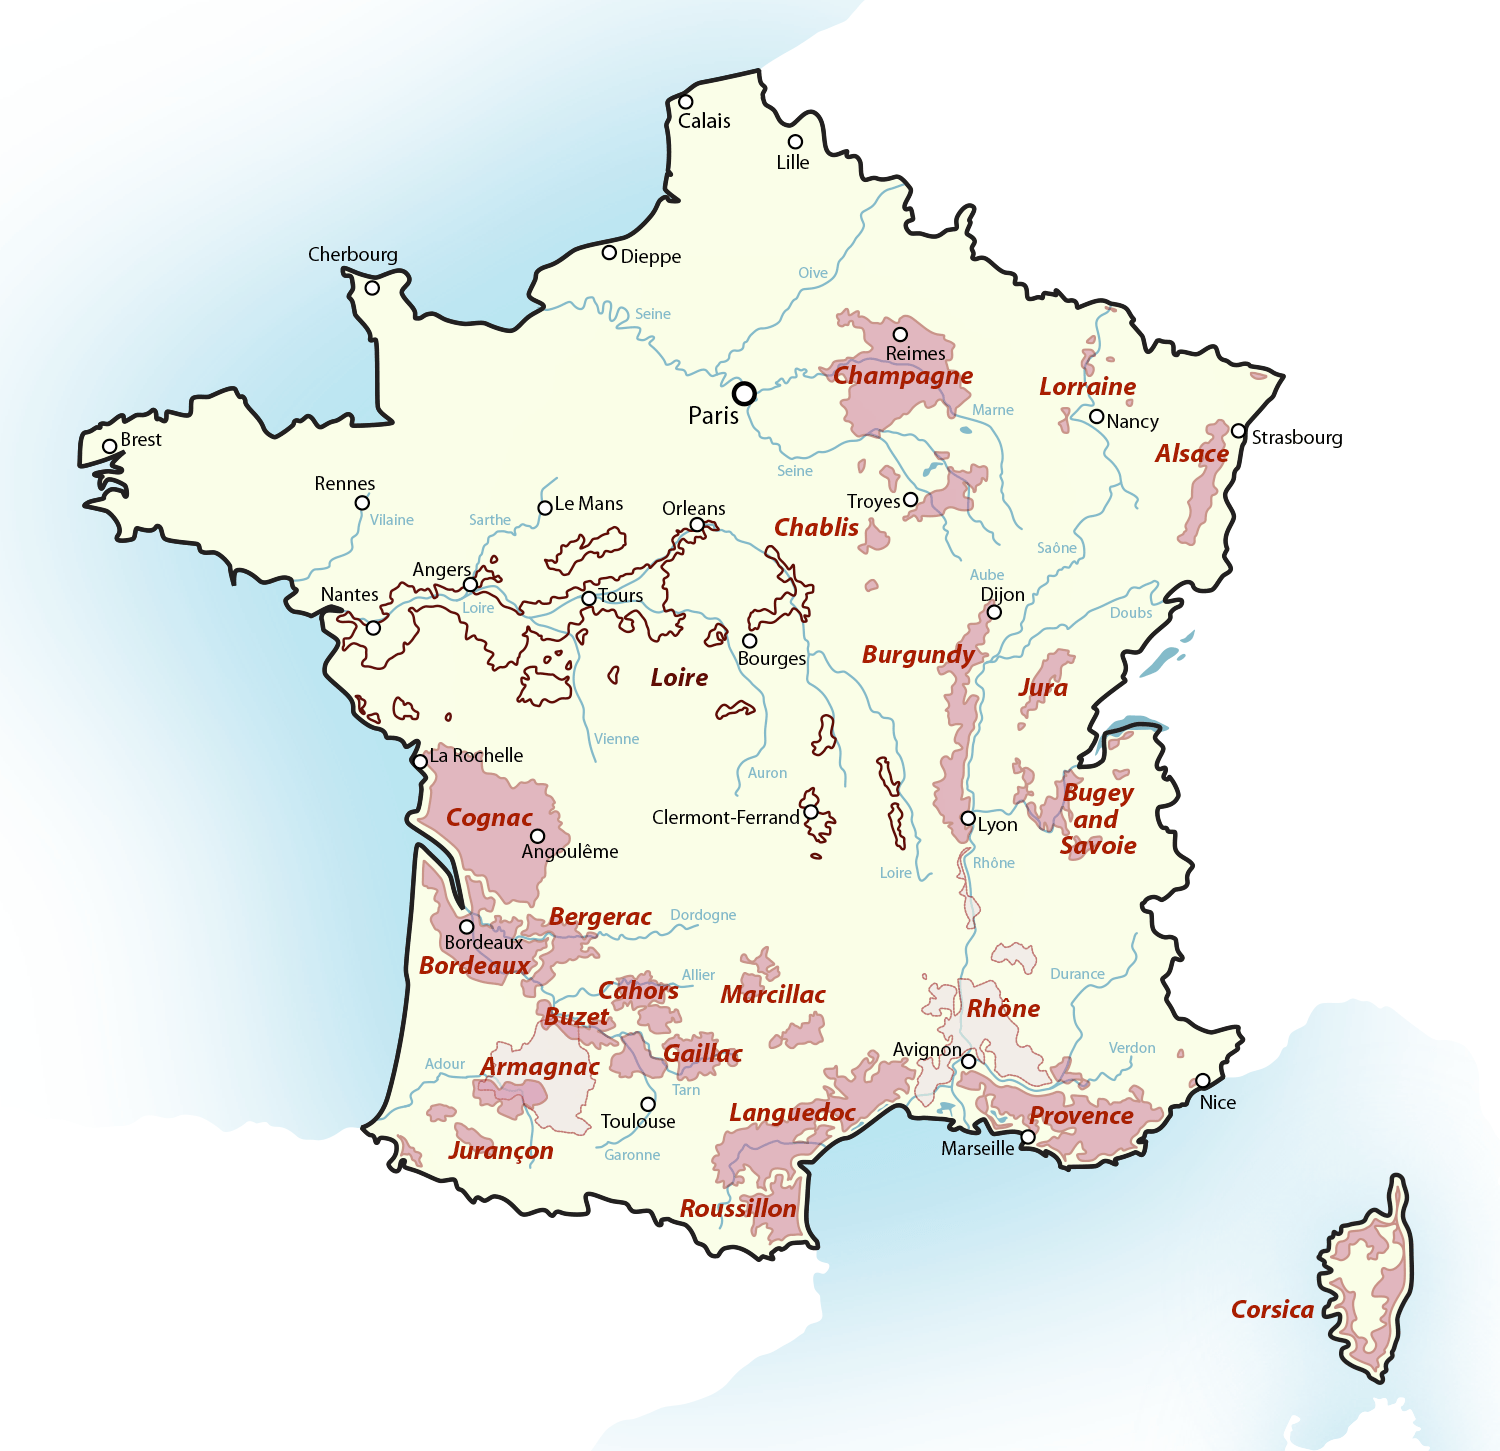 France Map Png.Wine Maps Sample Maps Of France And Germany